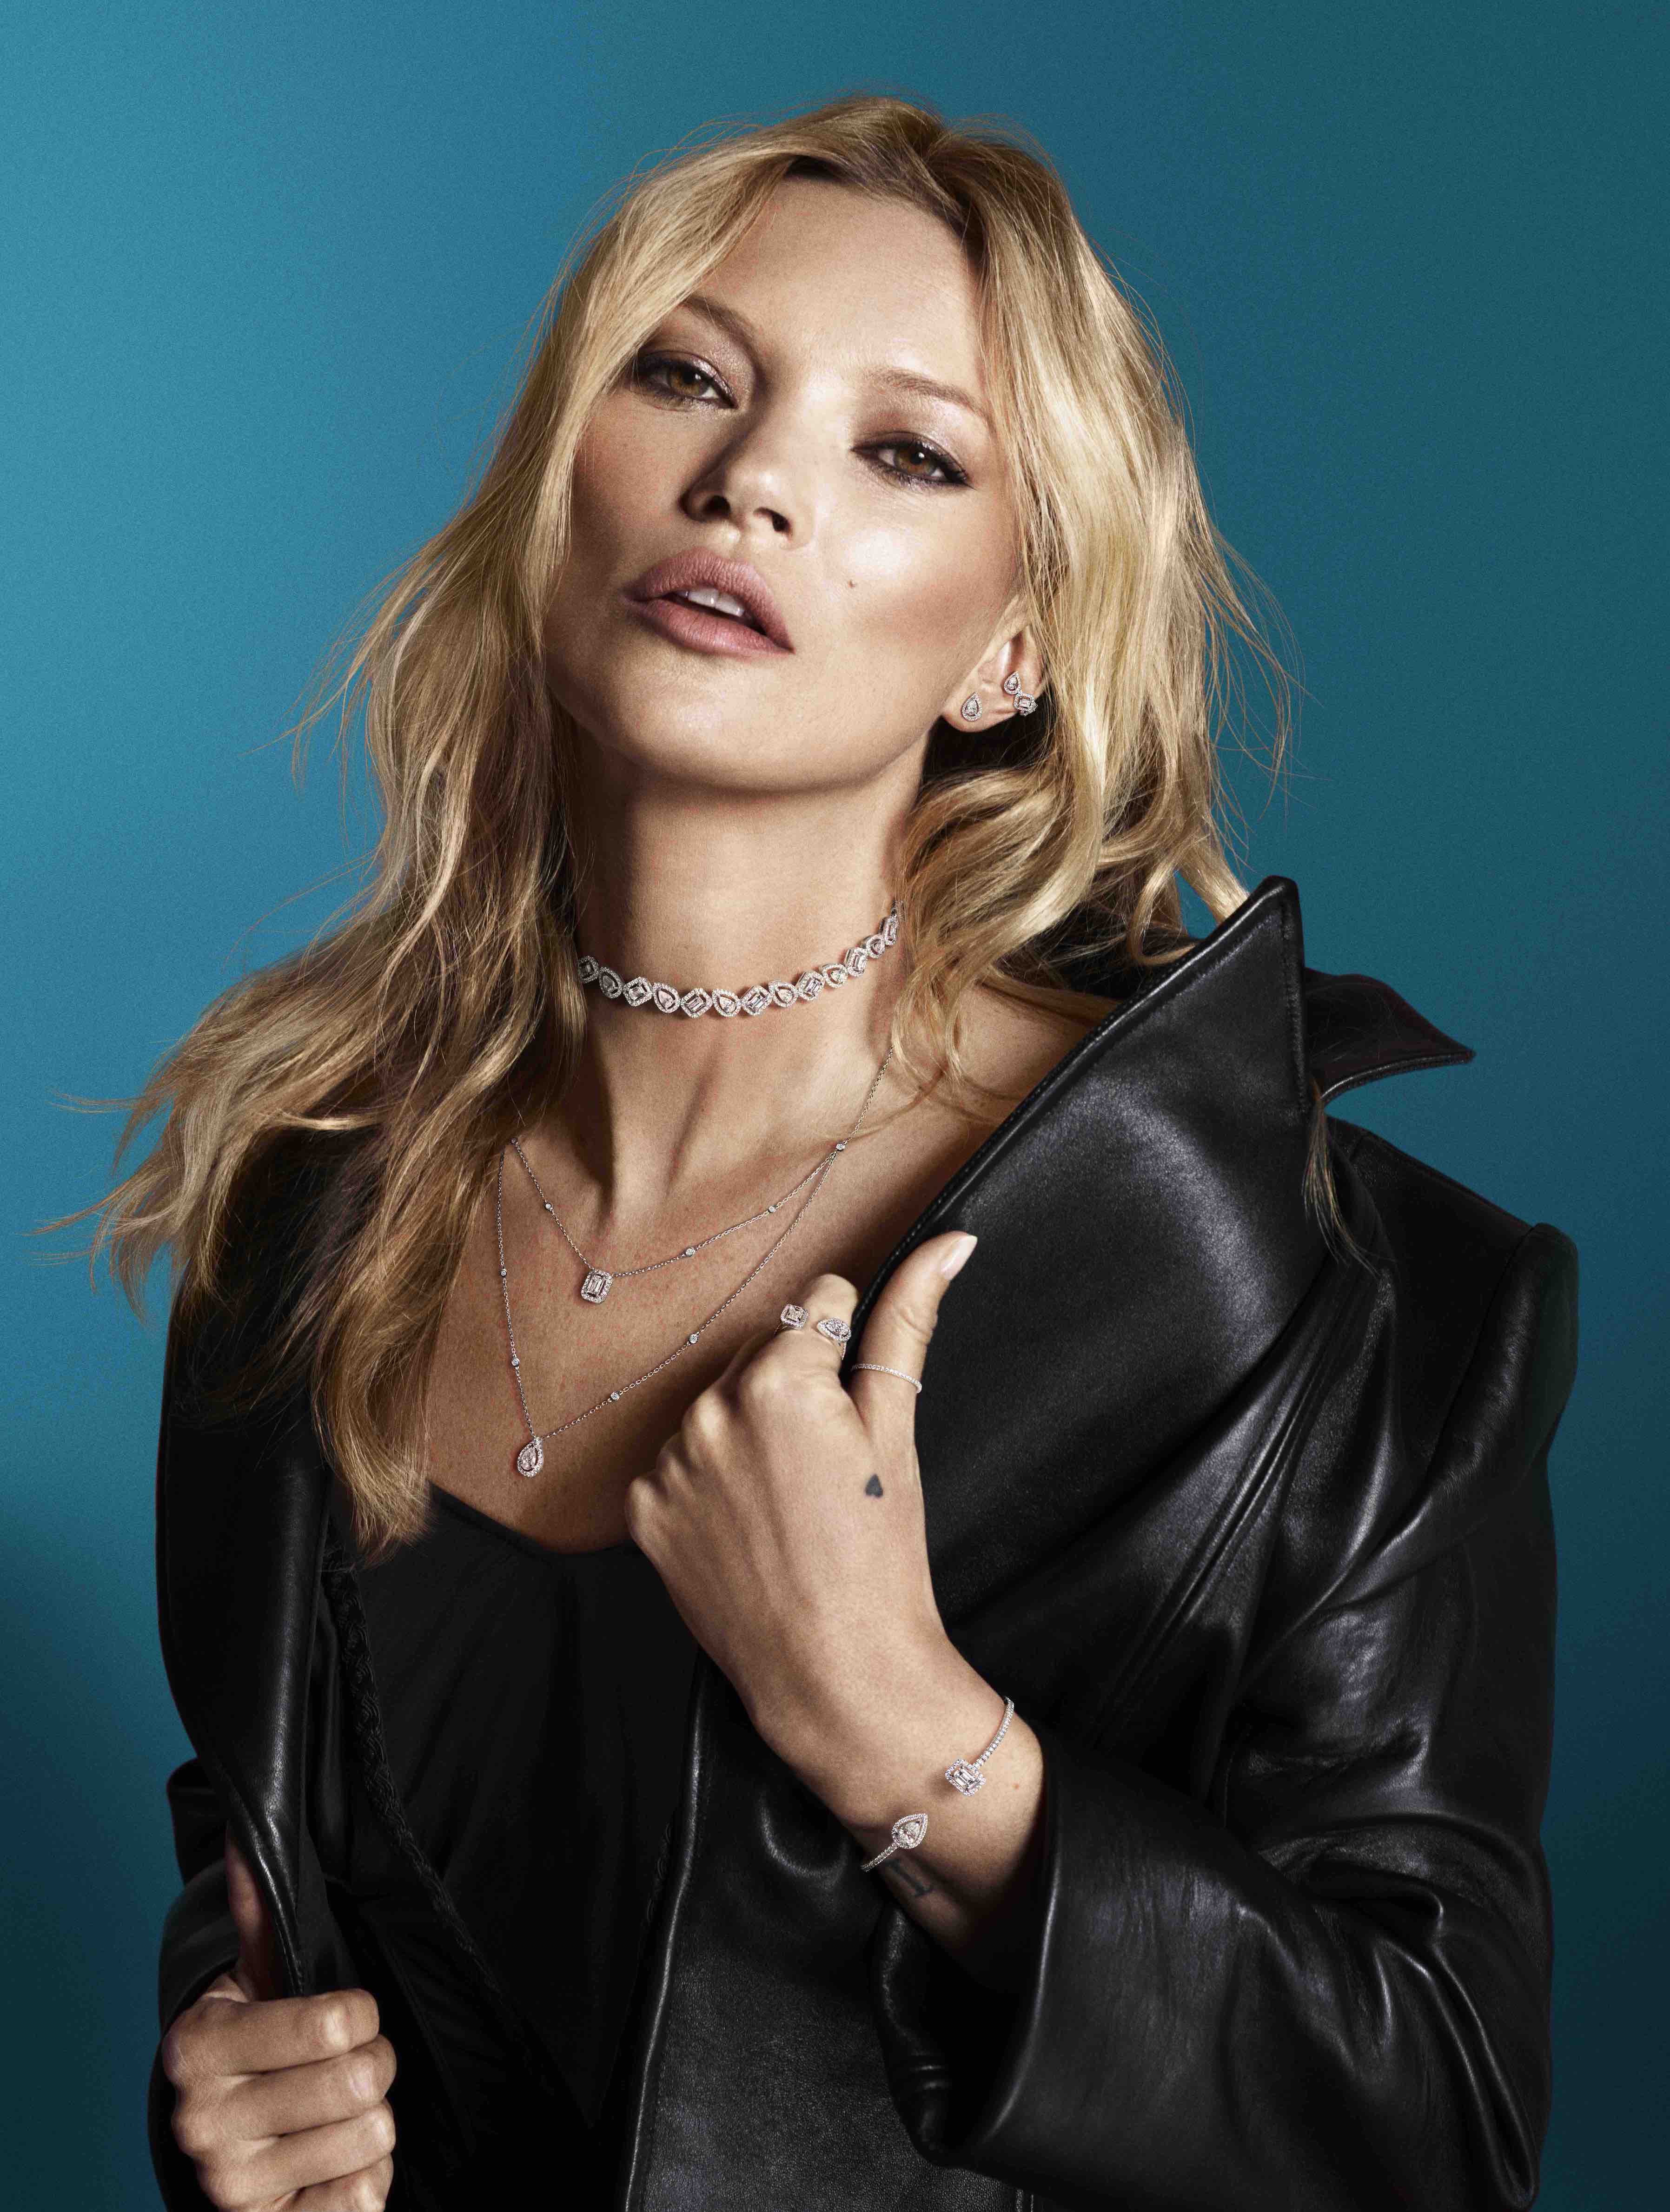 Kate Moss for Messika by Mert and Marcus - My Twin collection (2)